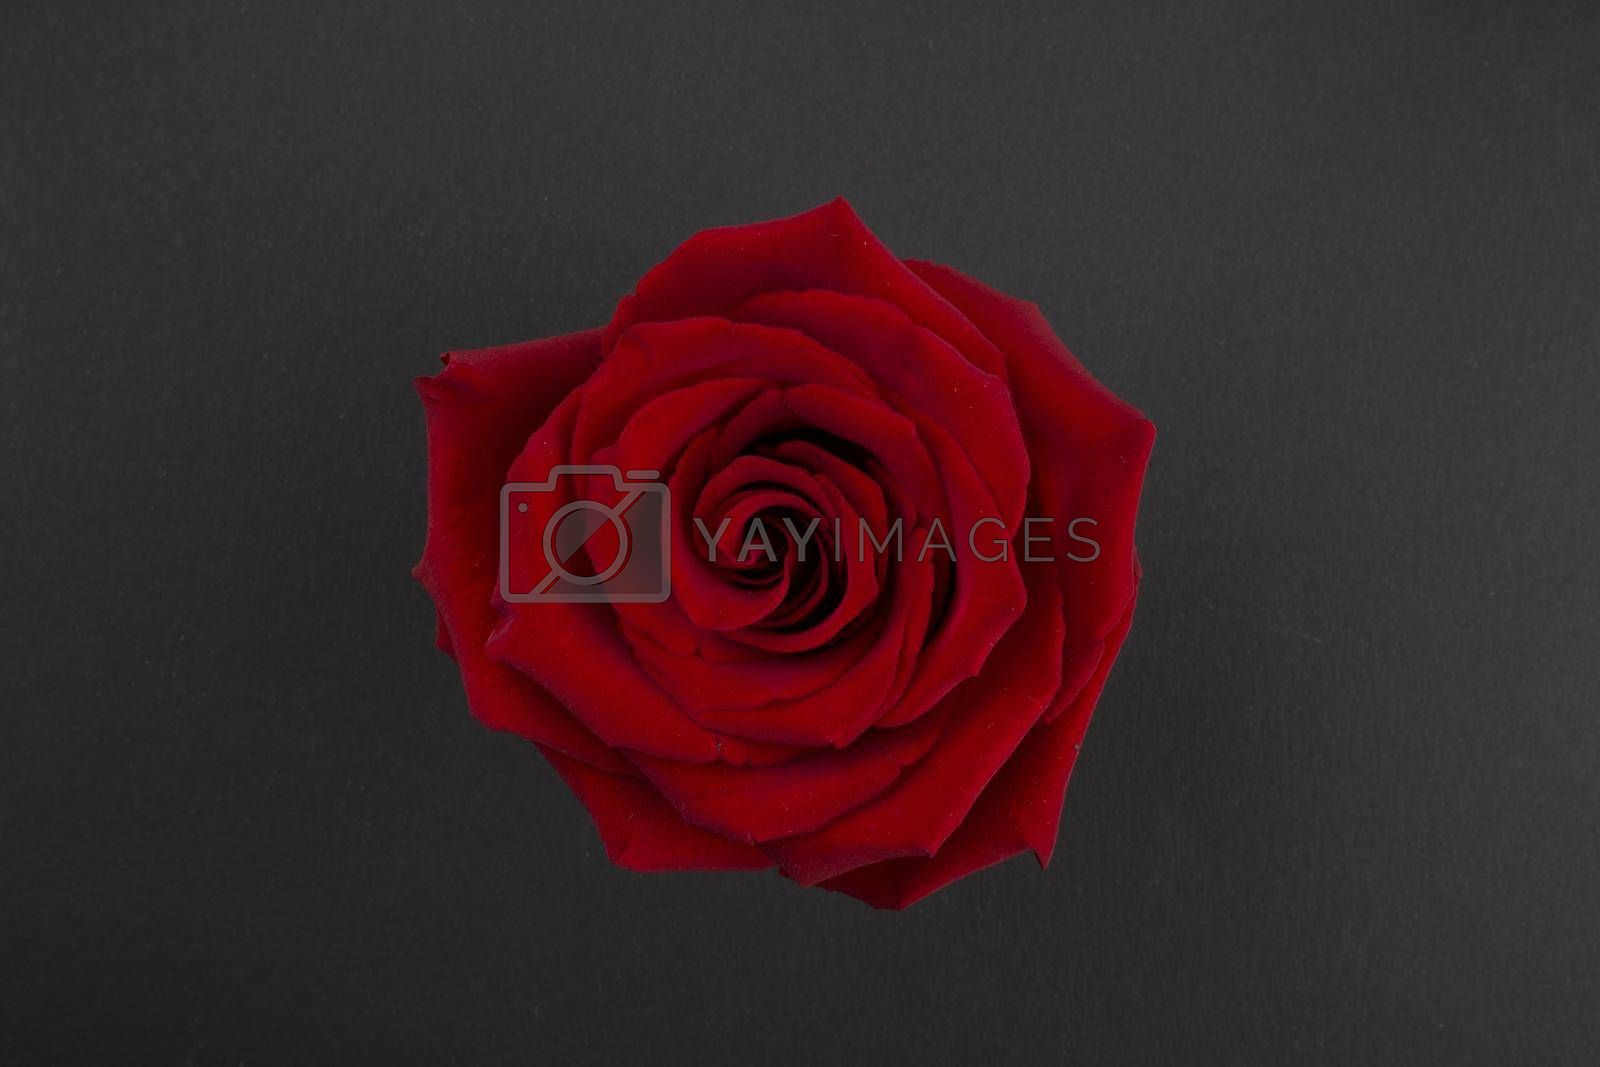 Red rose for St. Valentine's Day. Flowerhead of red rose on black paper background. Top view of a big red rose flower in the center of the photo.